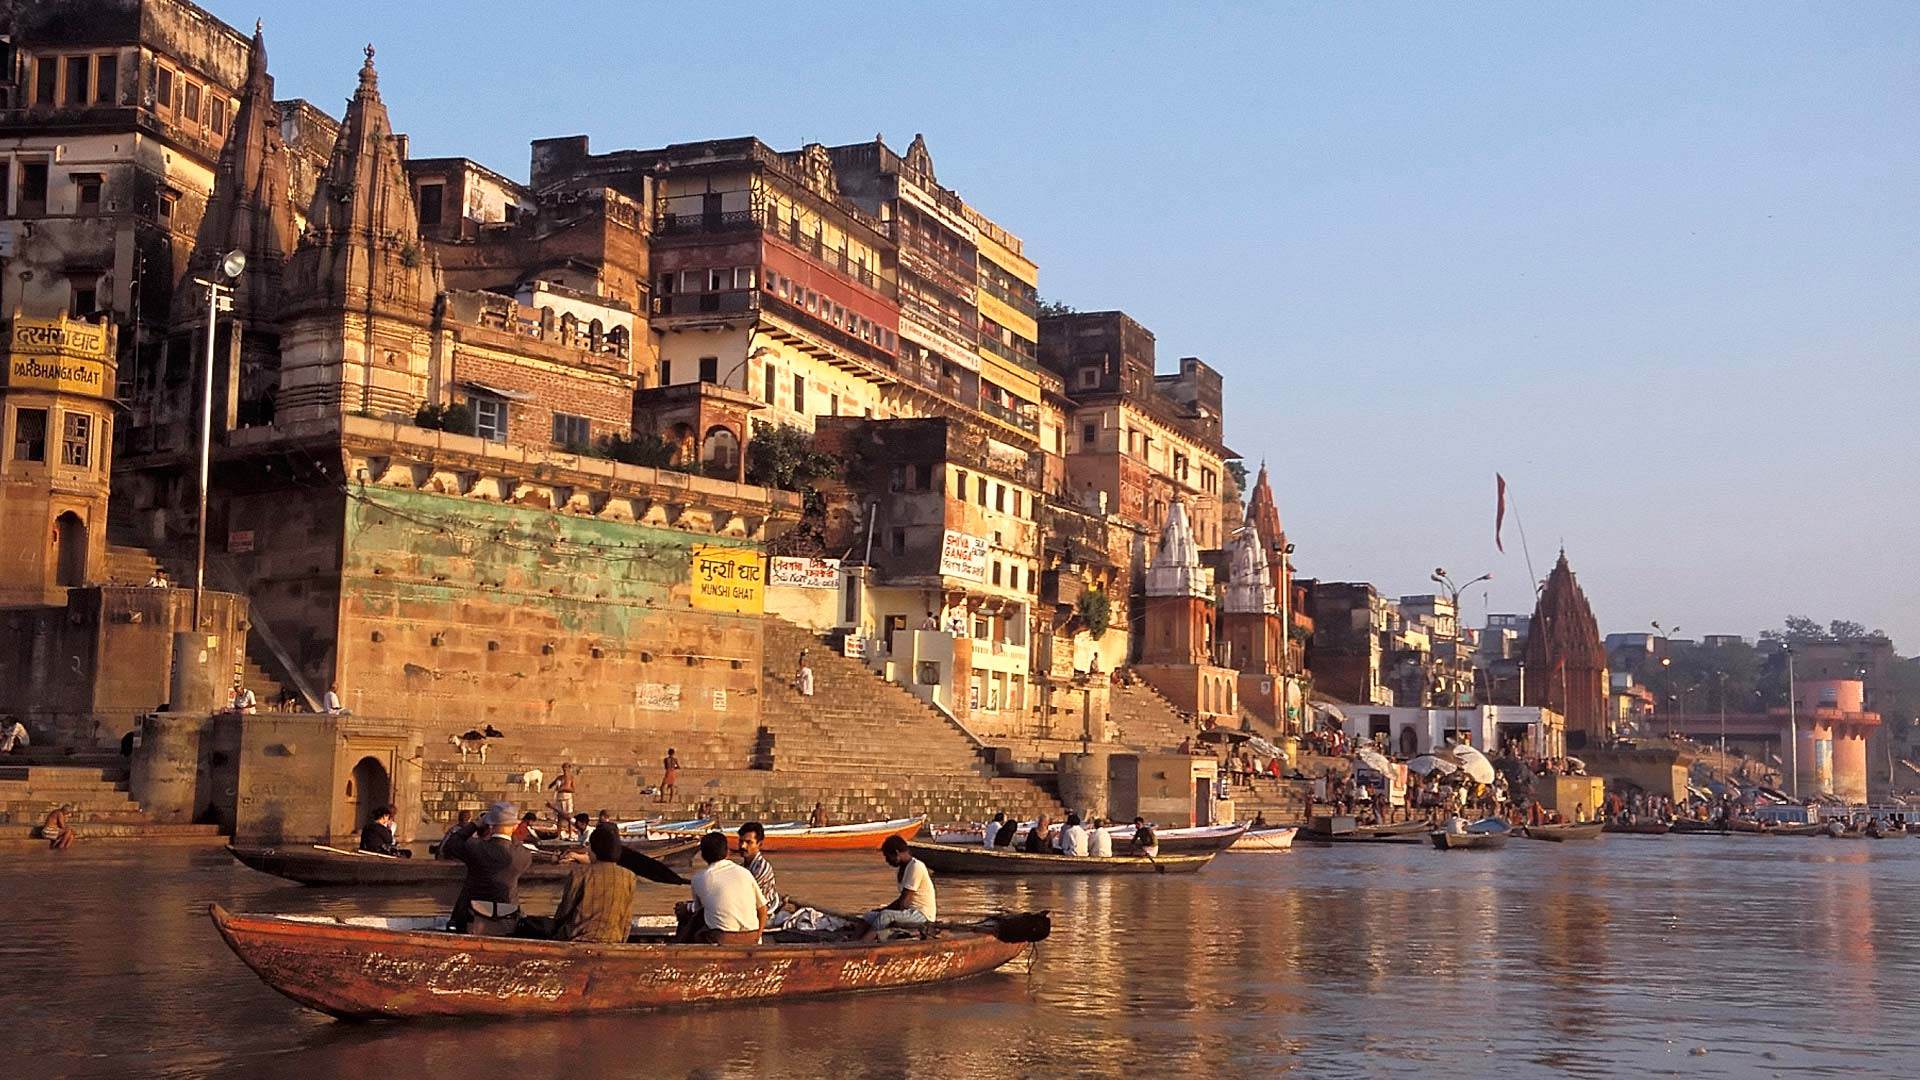 Skyline of Varanasi along the shores of the Ganges River in the early morning, Uttar Pradesh, India